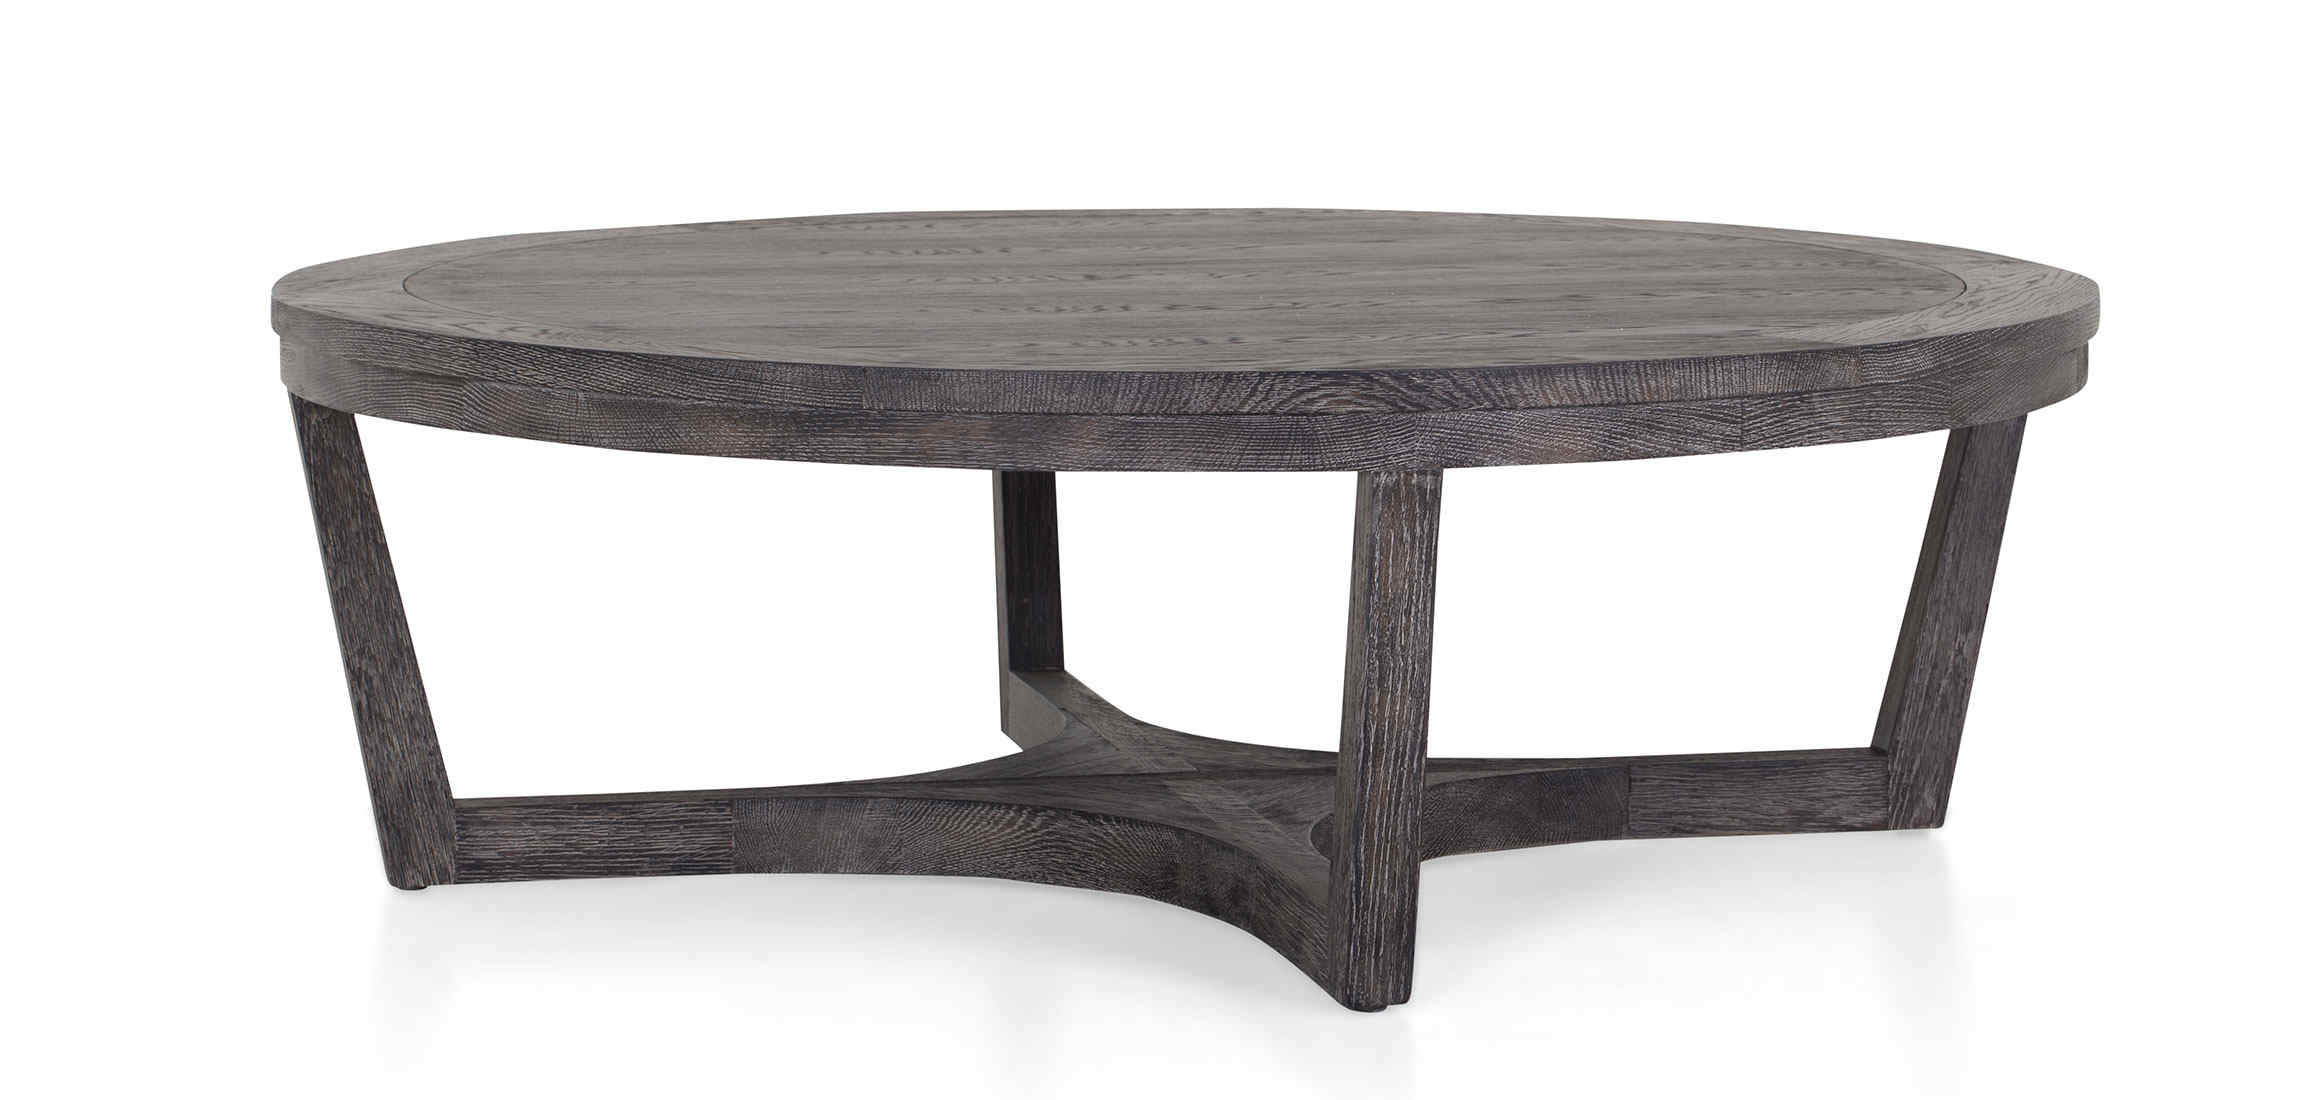 SYRINX round oak coffee table in grey